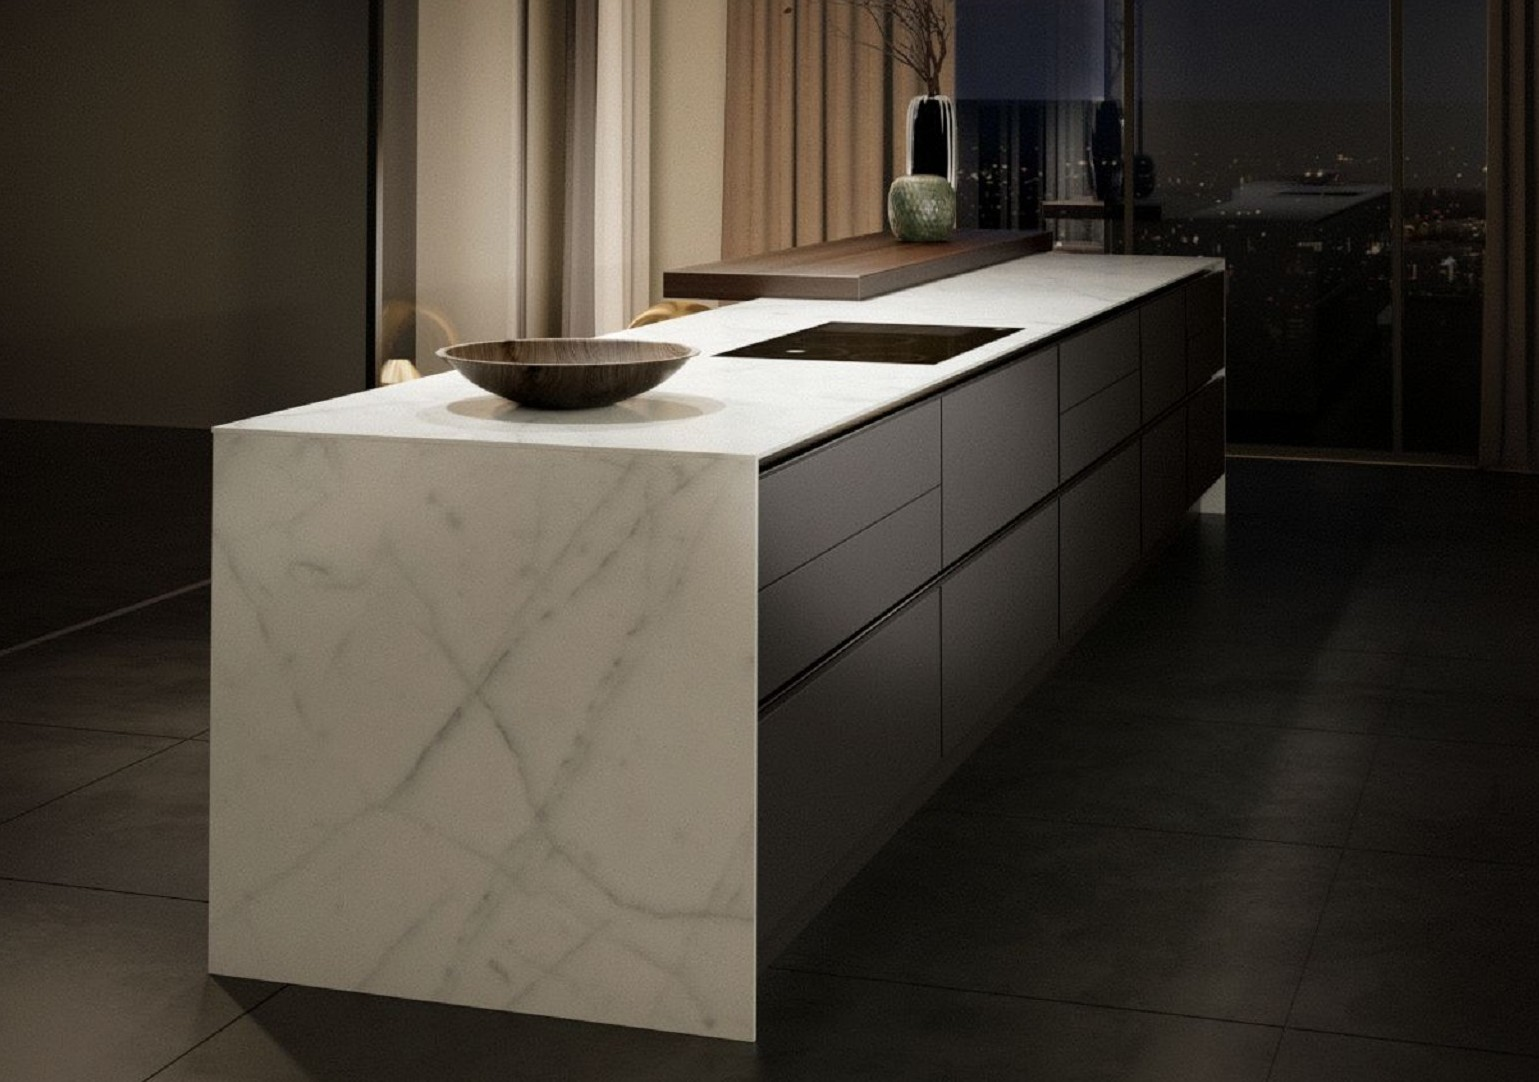 Spacious SieMatic Pure S2 SE kitchen island with 1 cm countertop and side panels in marble